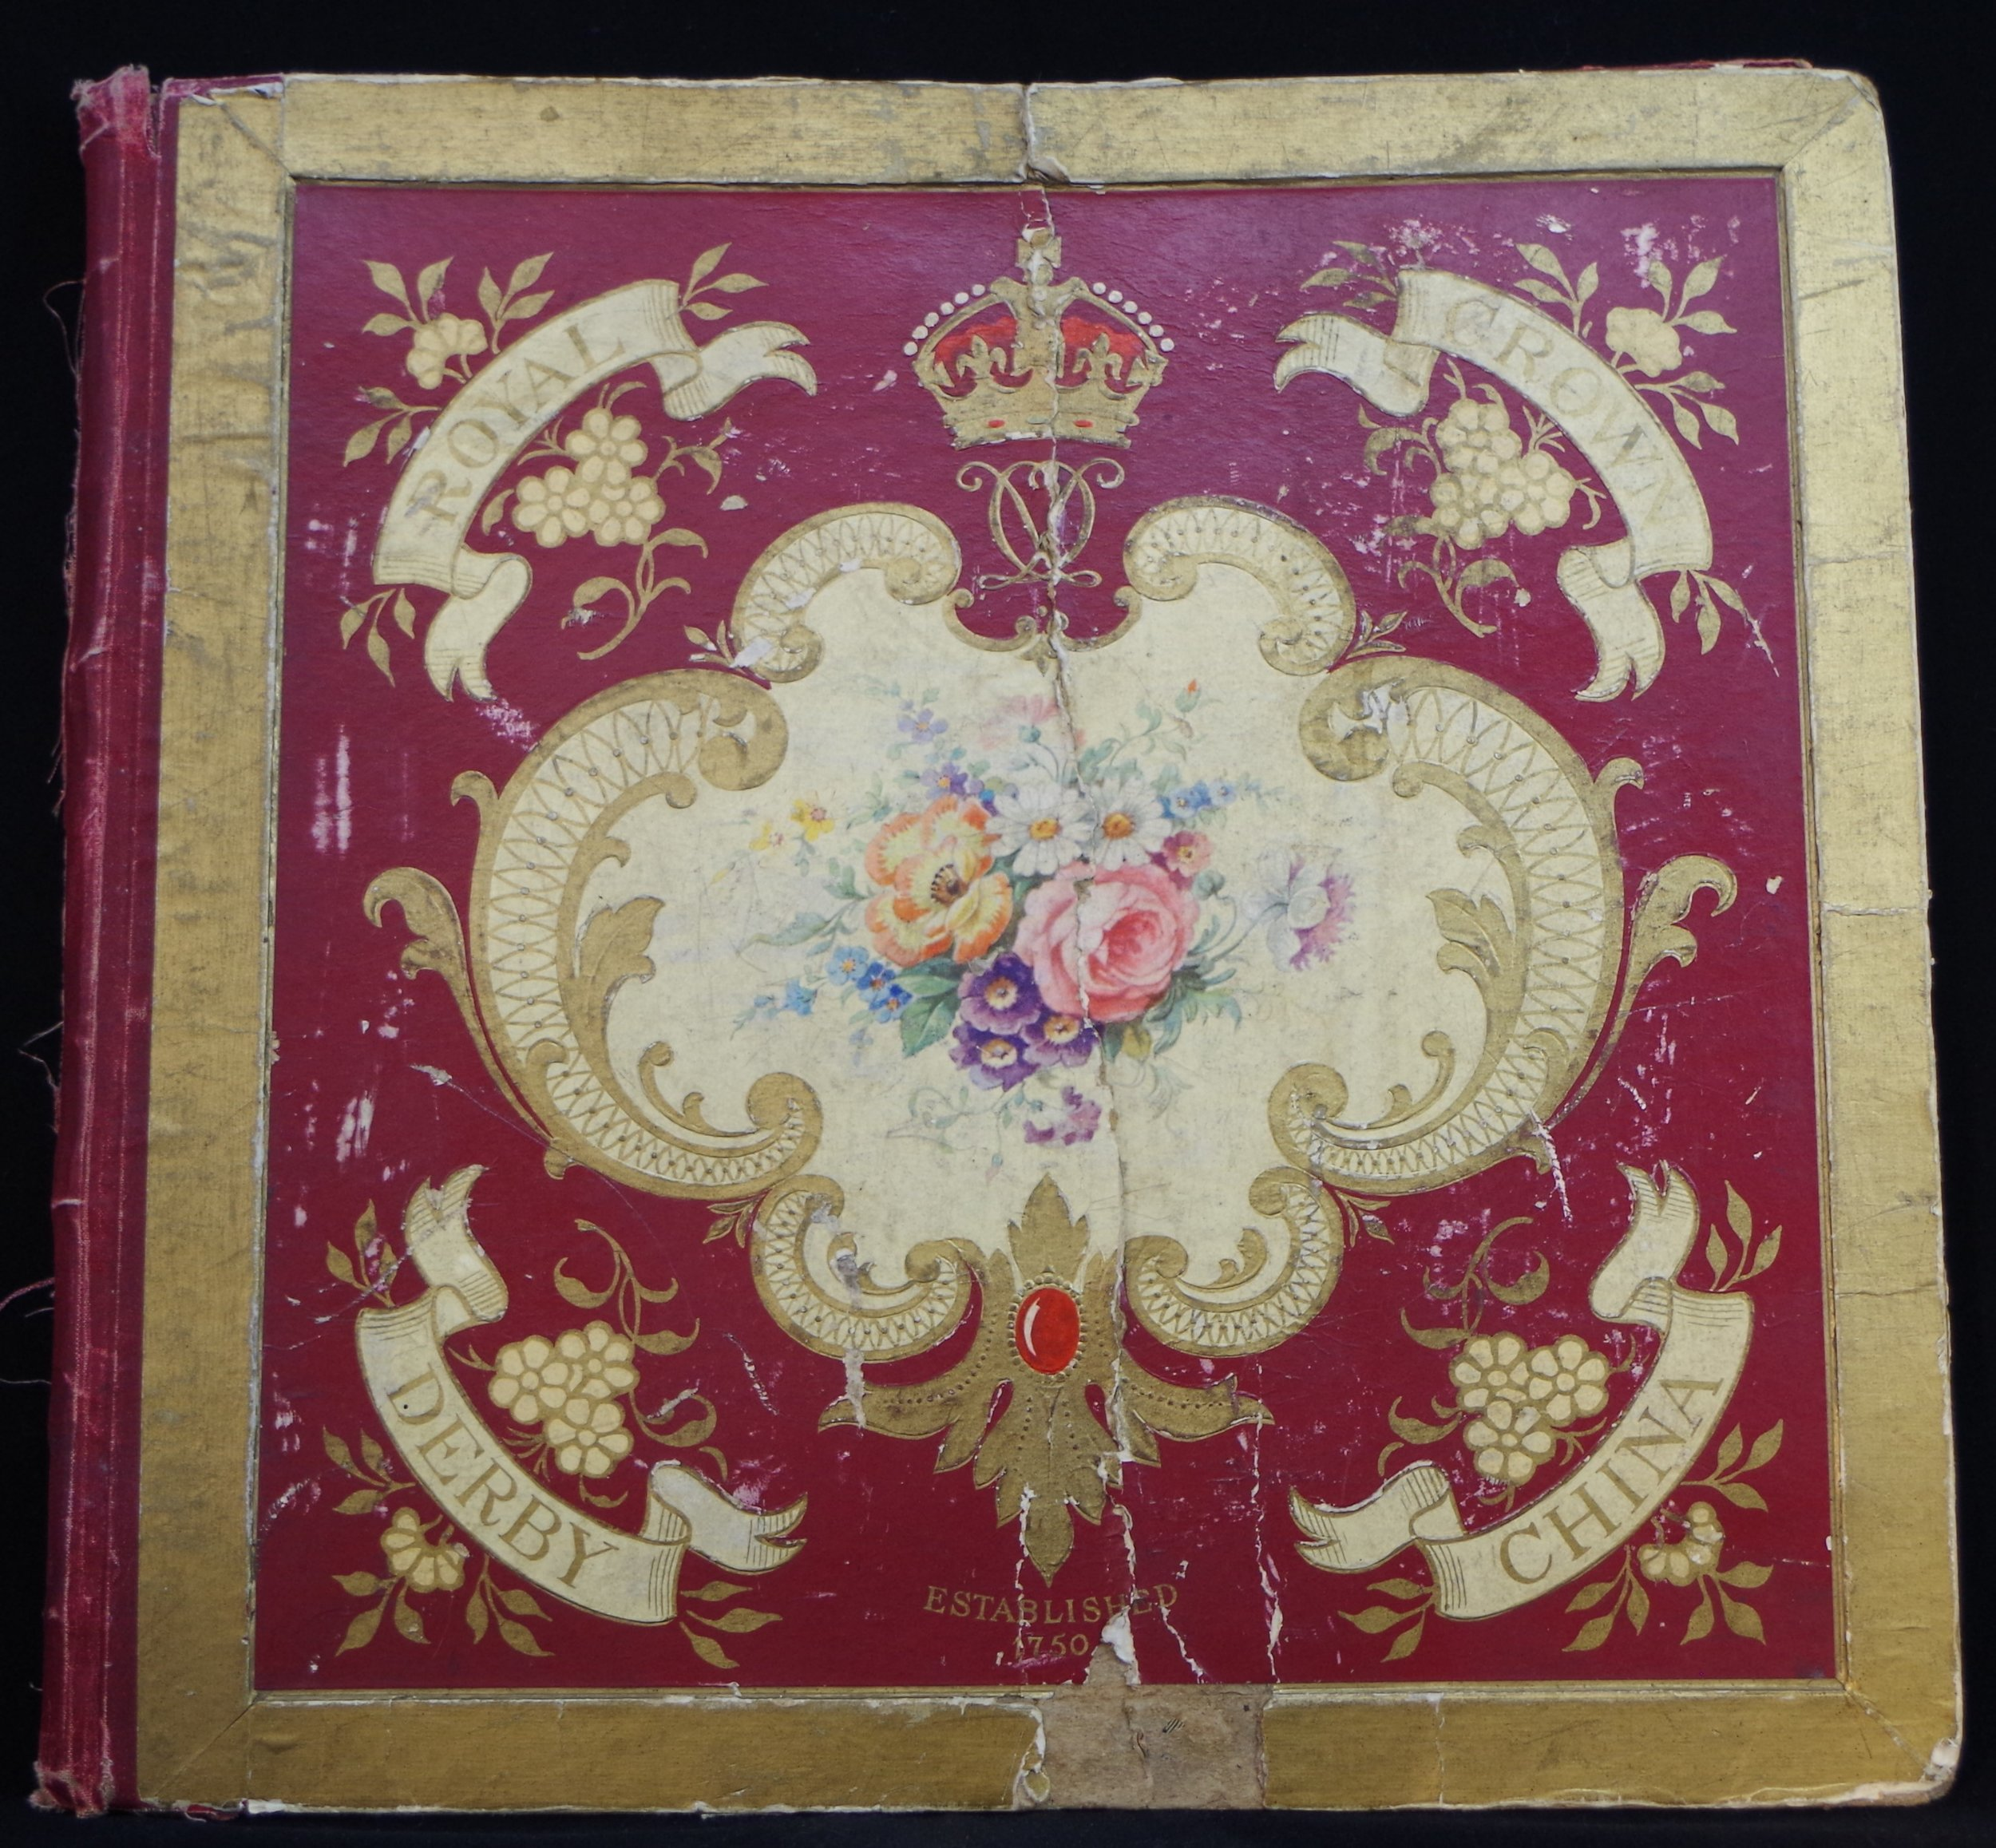 royal-crown-derby-fancy-item-photographs-hard-front-cover